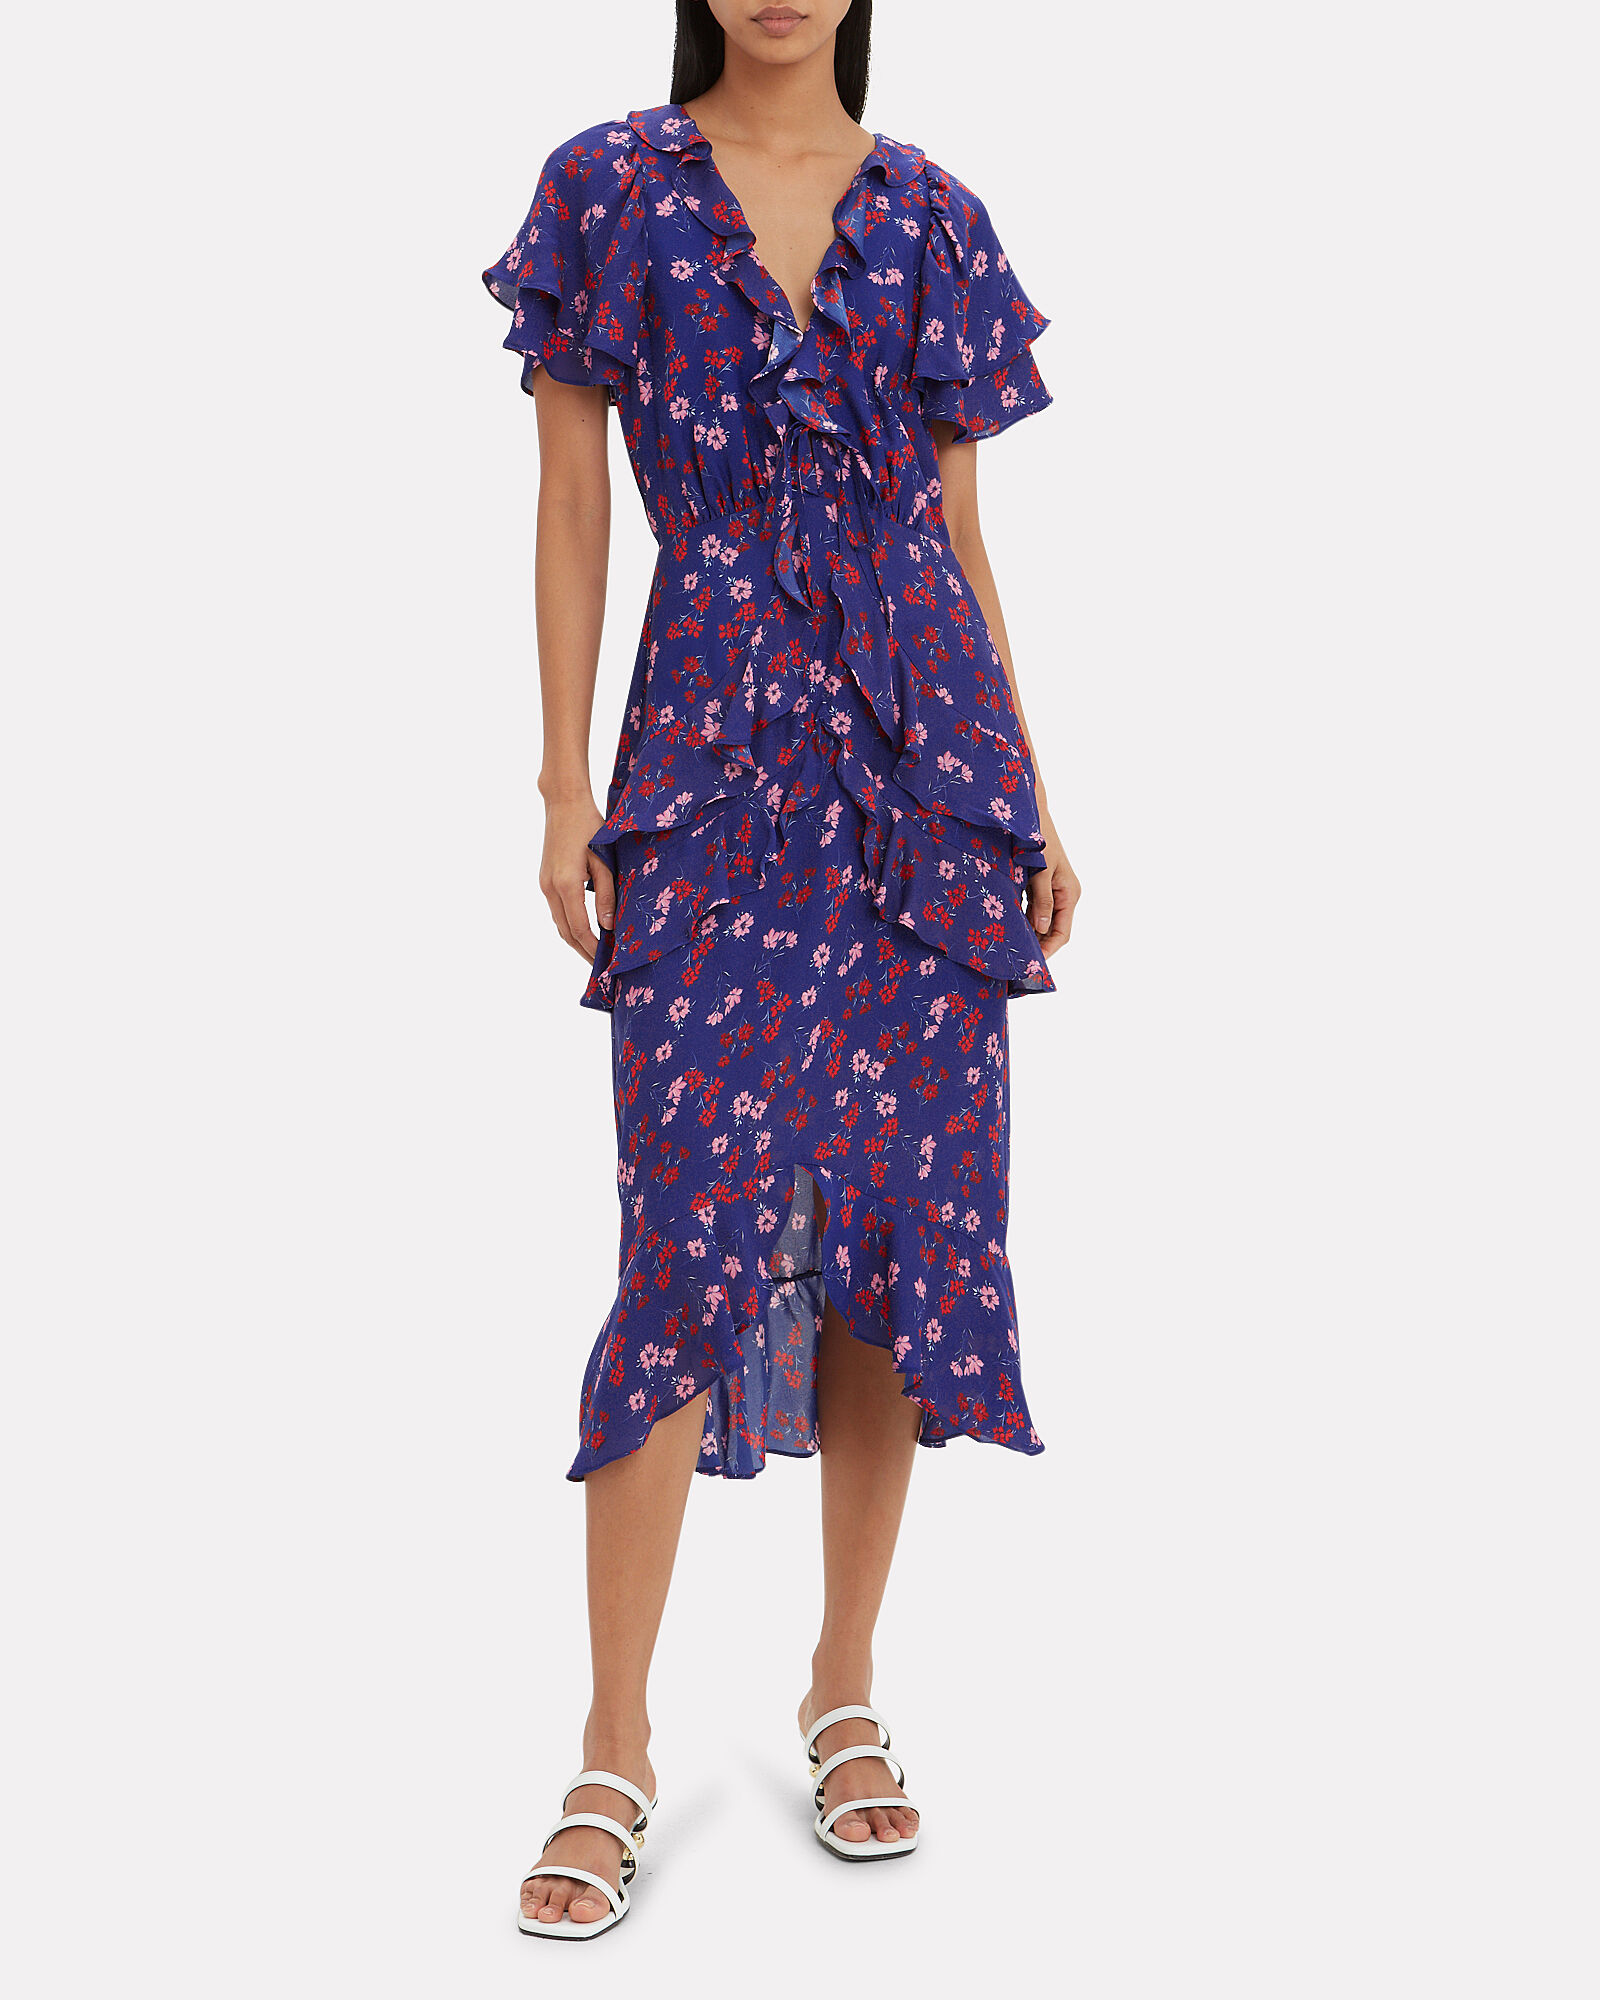 Yearning Ruffle Midi Dress, PURPLE/FLORAL, hi-res